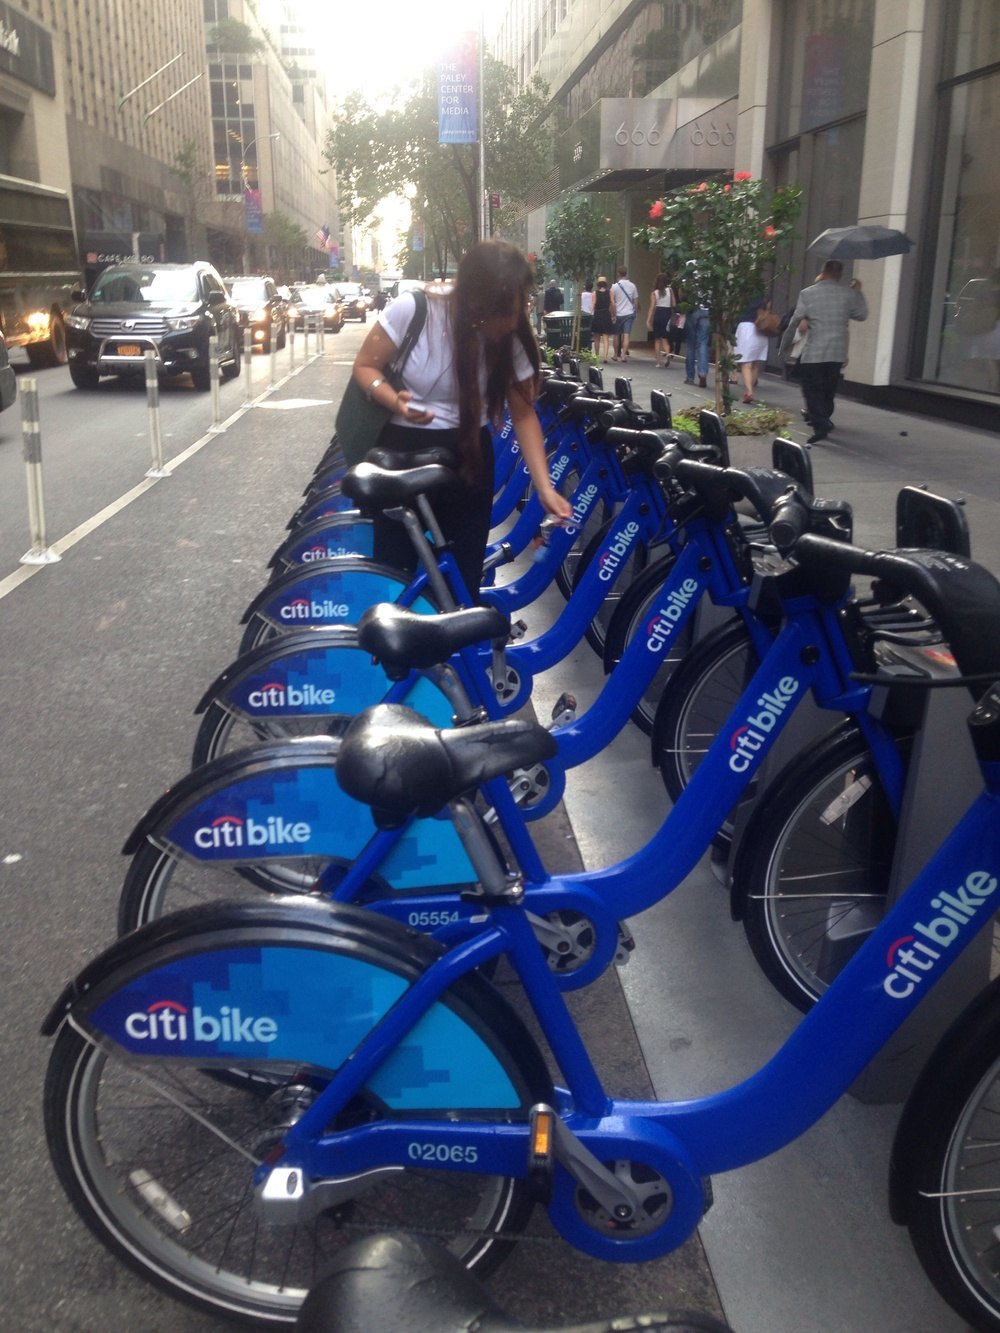 None of these CitiBikes were functioning, P.S.